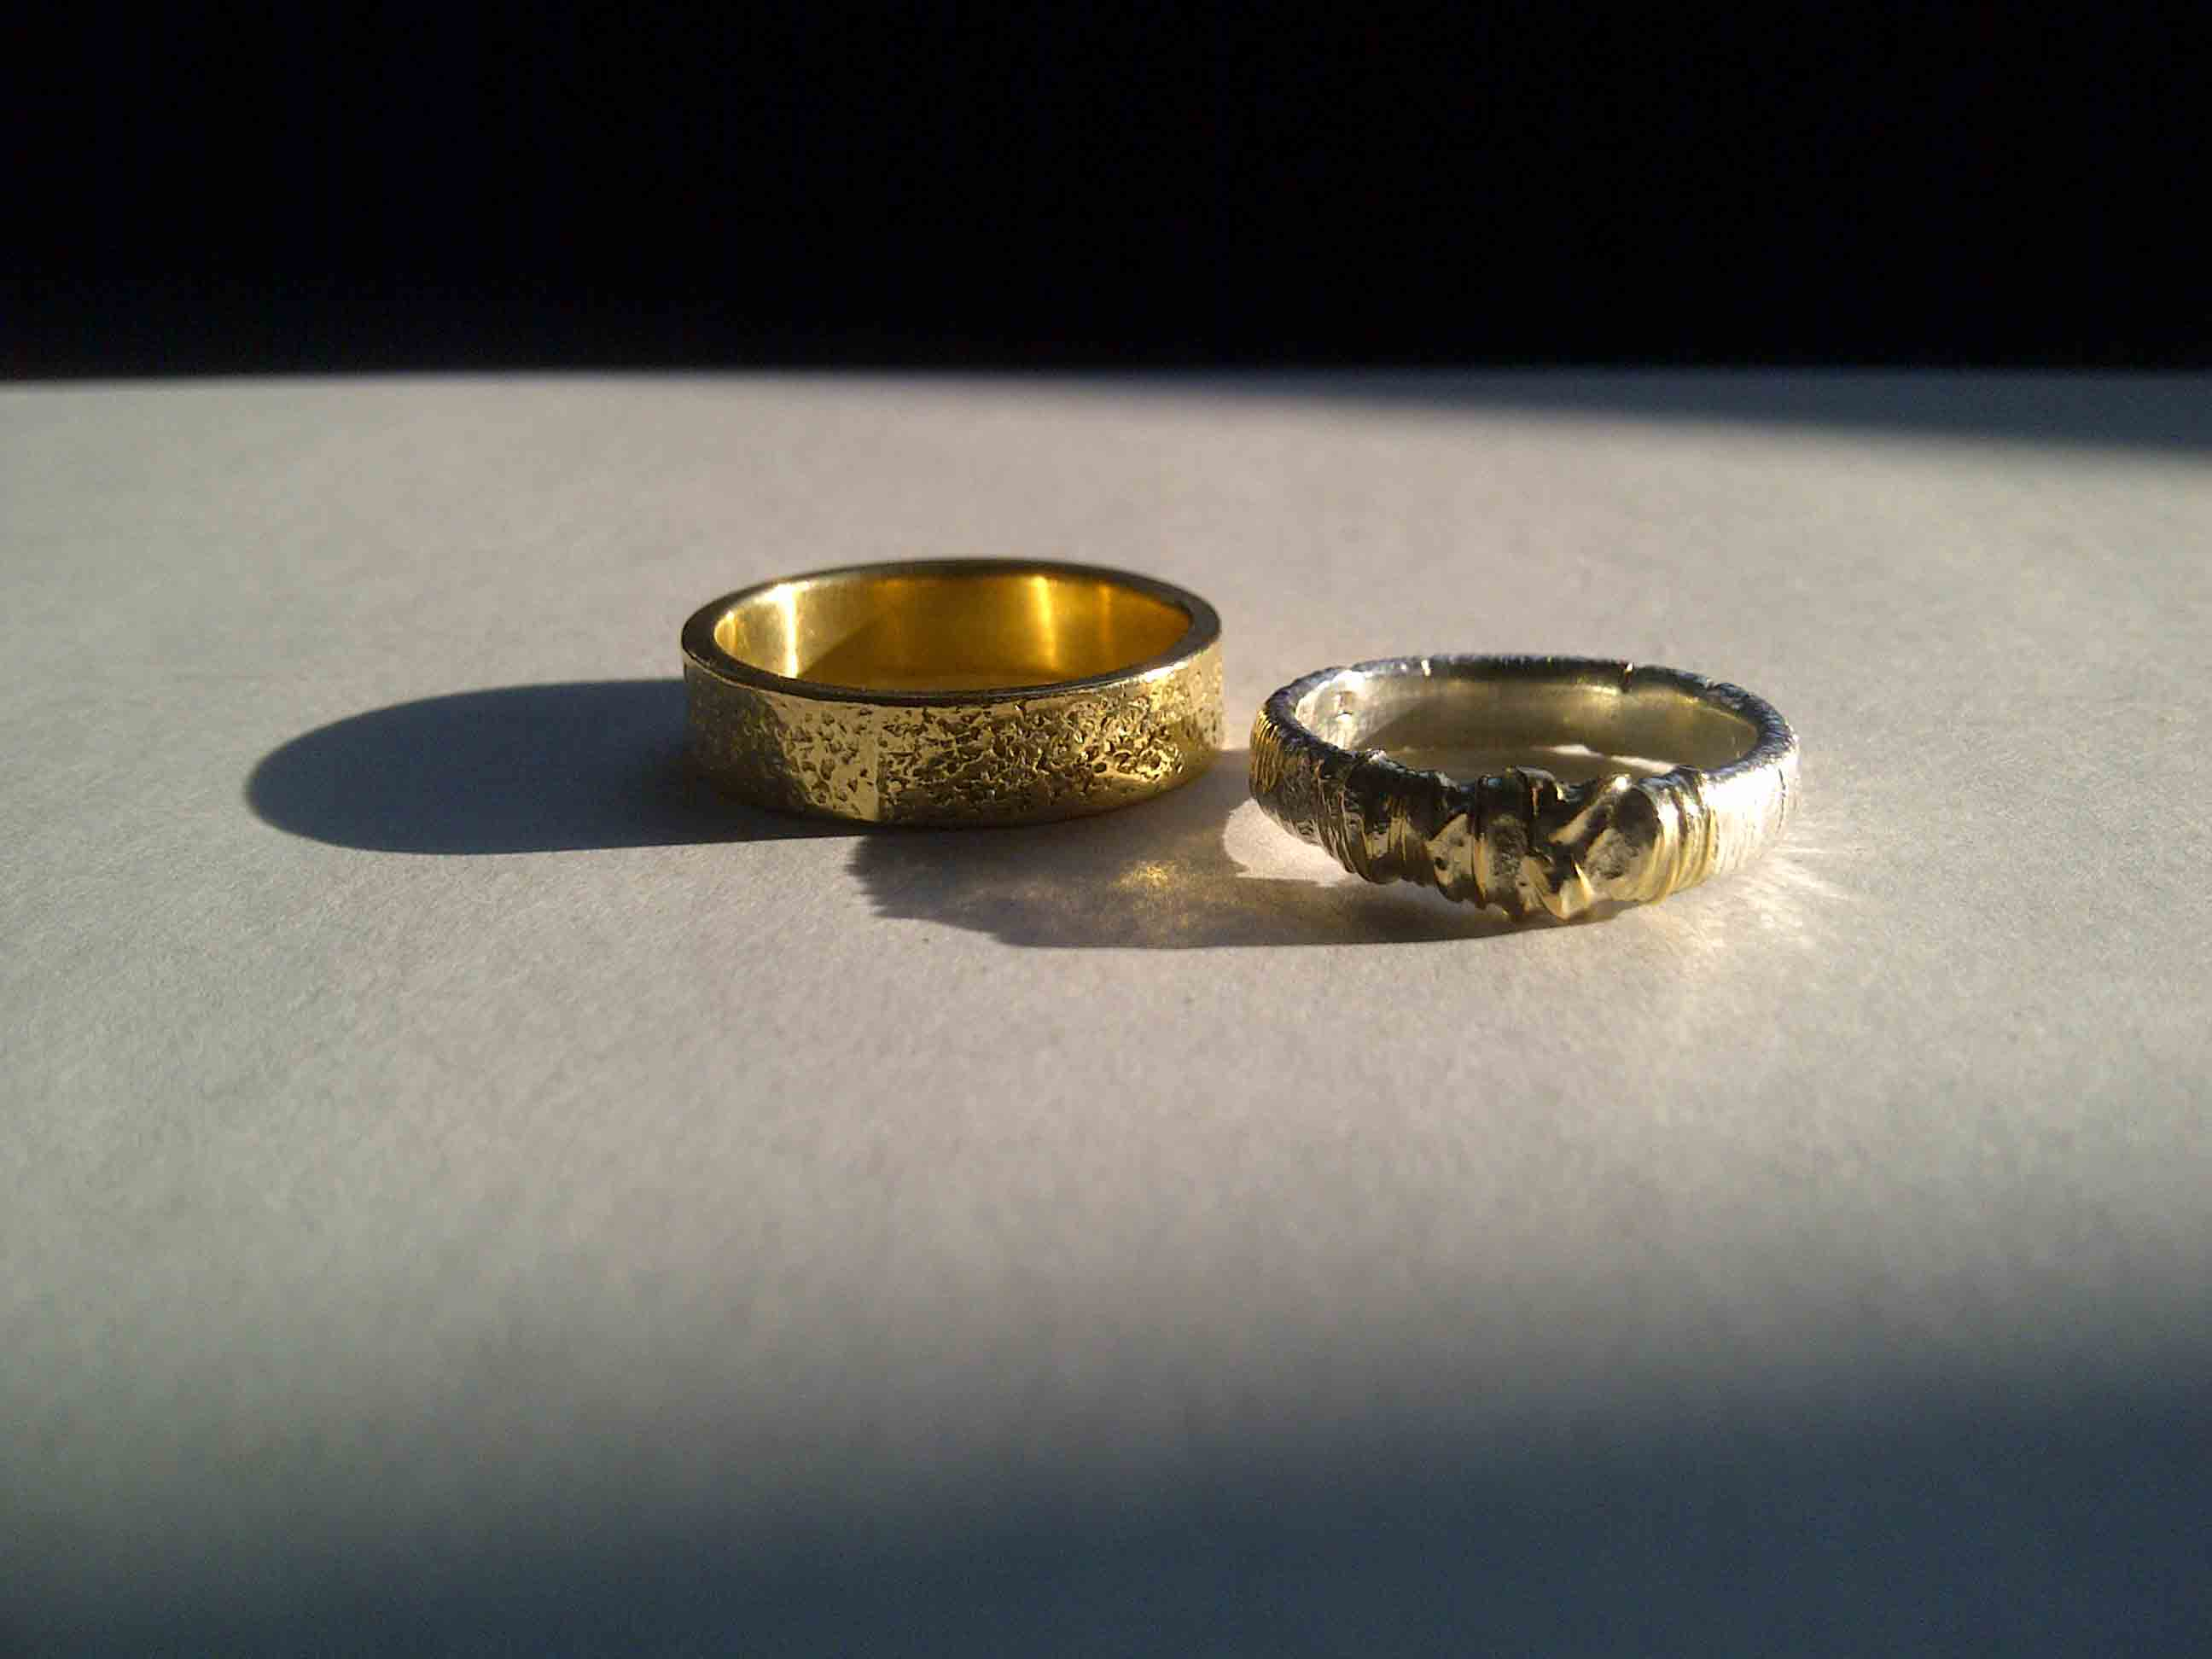 own wedding rings to design my works offer borkowskijewellery